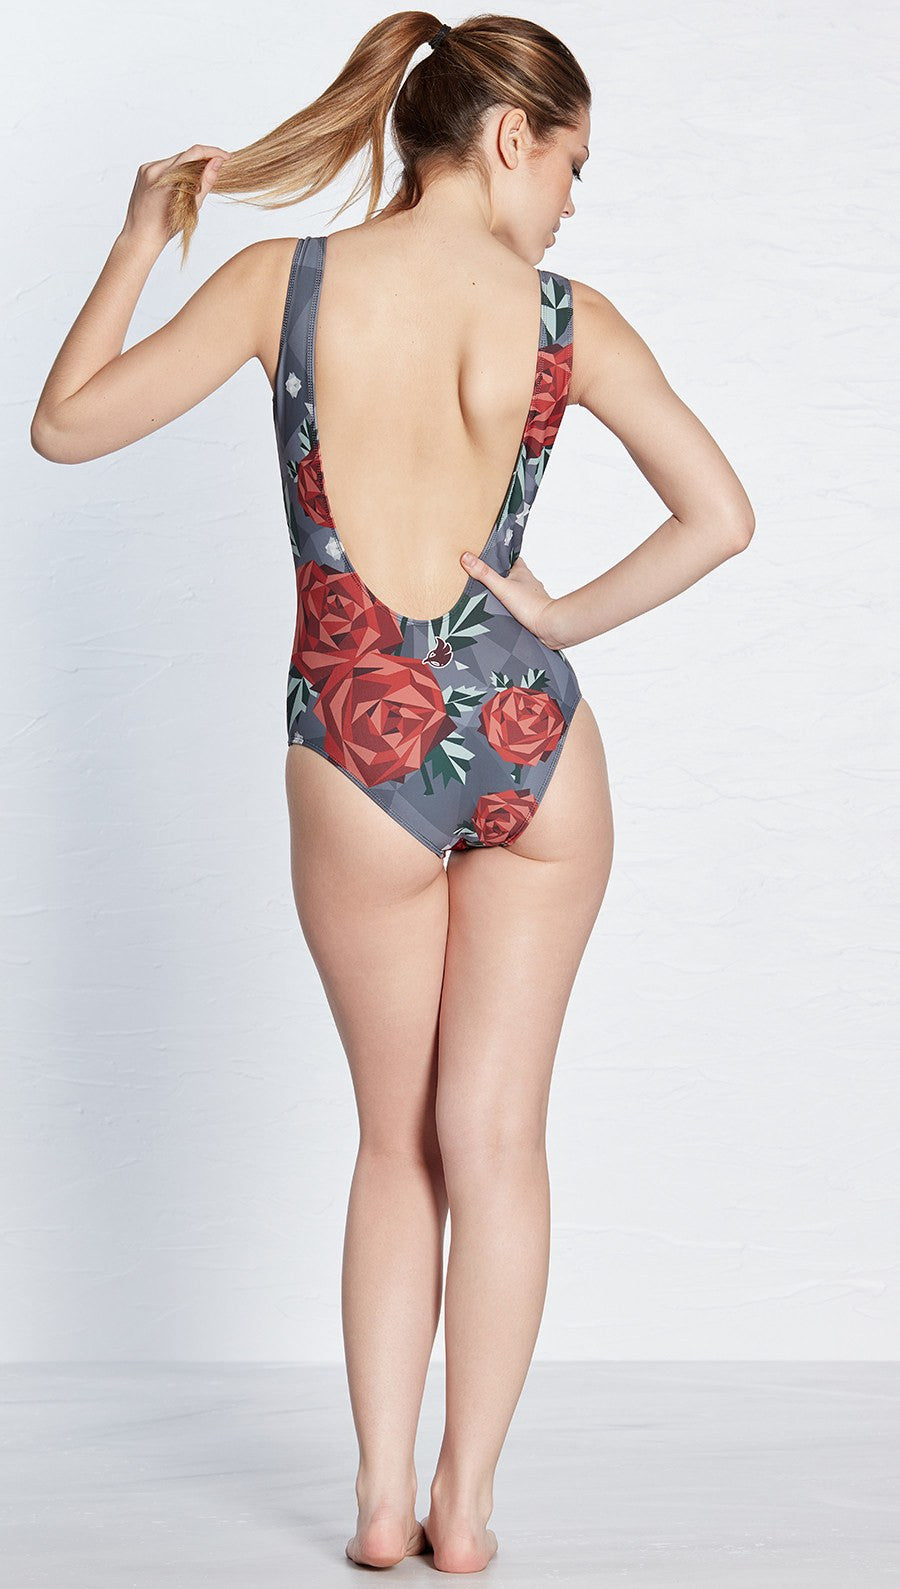 closeup front view of model wearing geometric rose themed one piece swimsuit / leotard